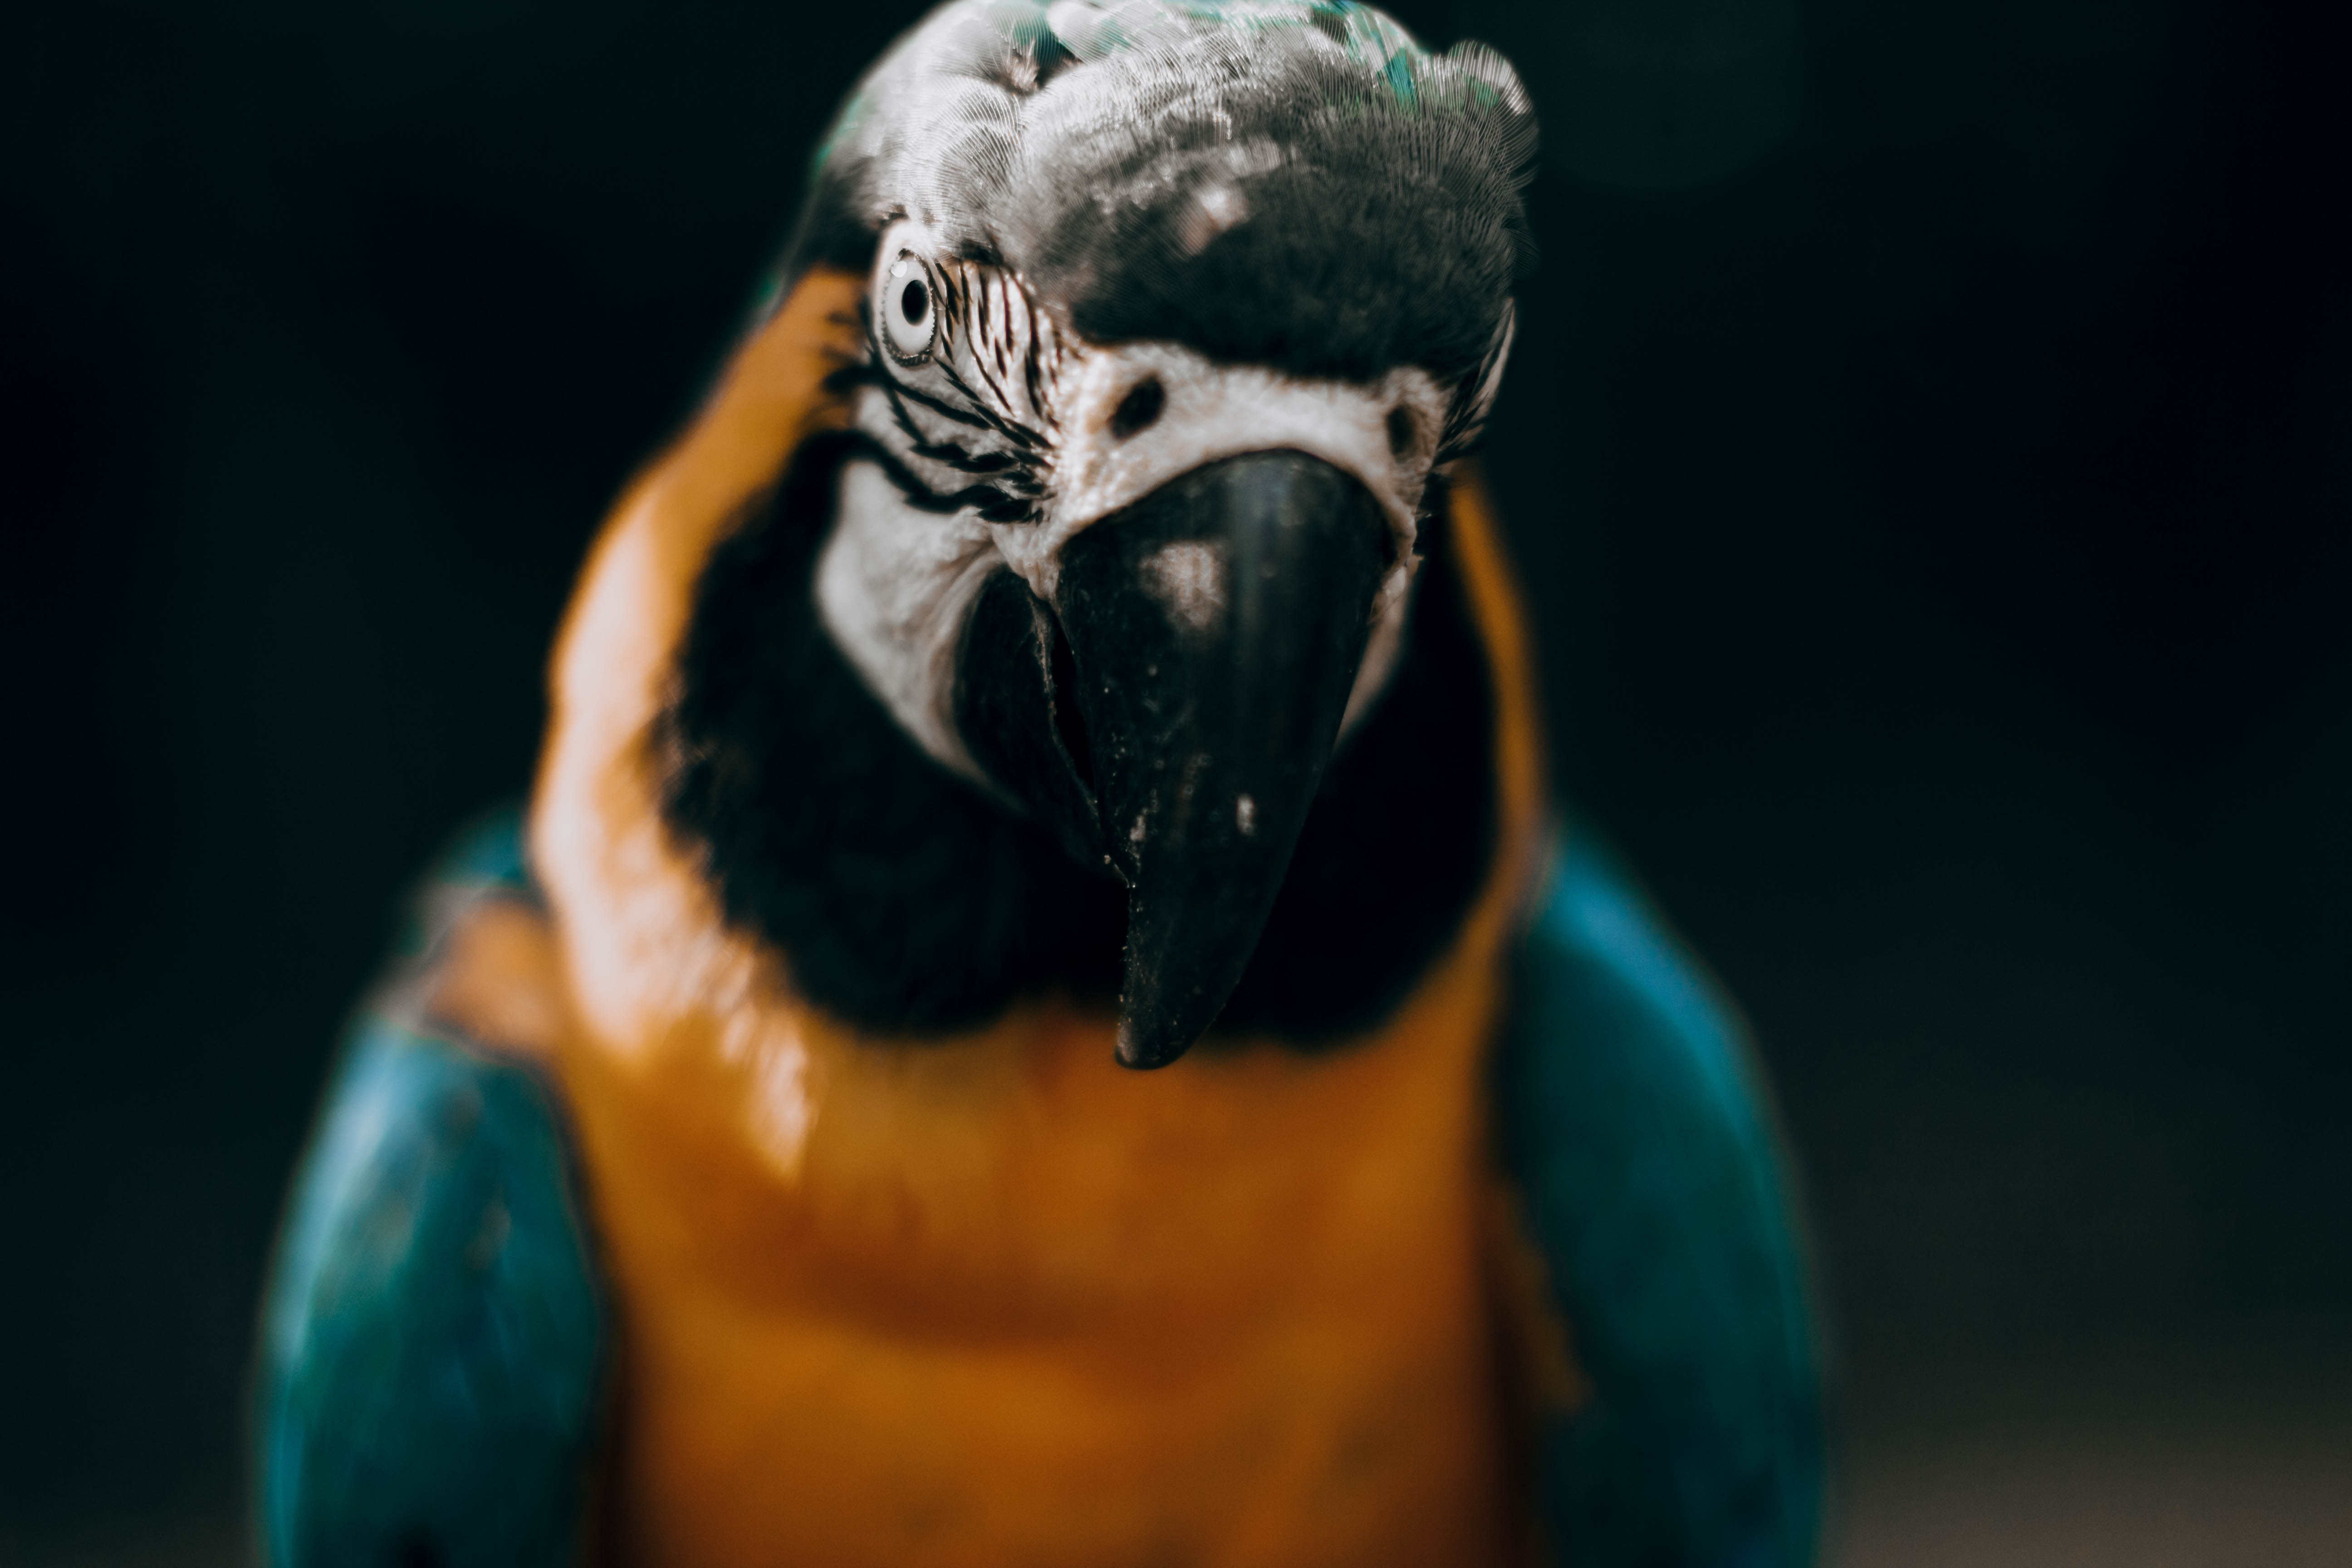 96848 download wallpaper Animals, Macaw, Parrots, Bird, Multicolored, Motley, Sight, Opinion screensavers and pictures for free